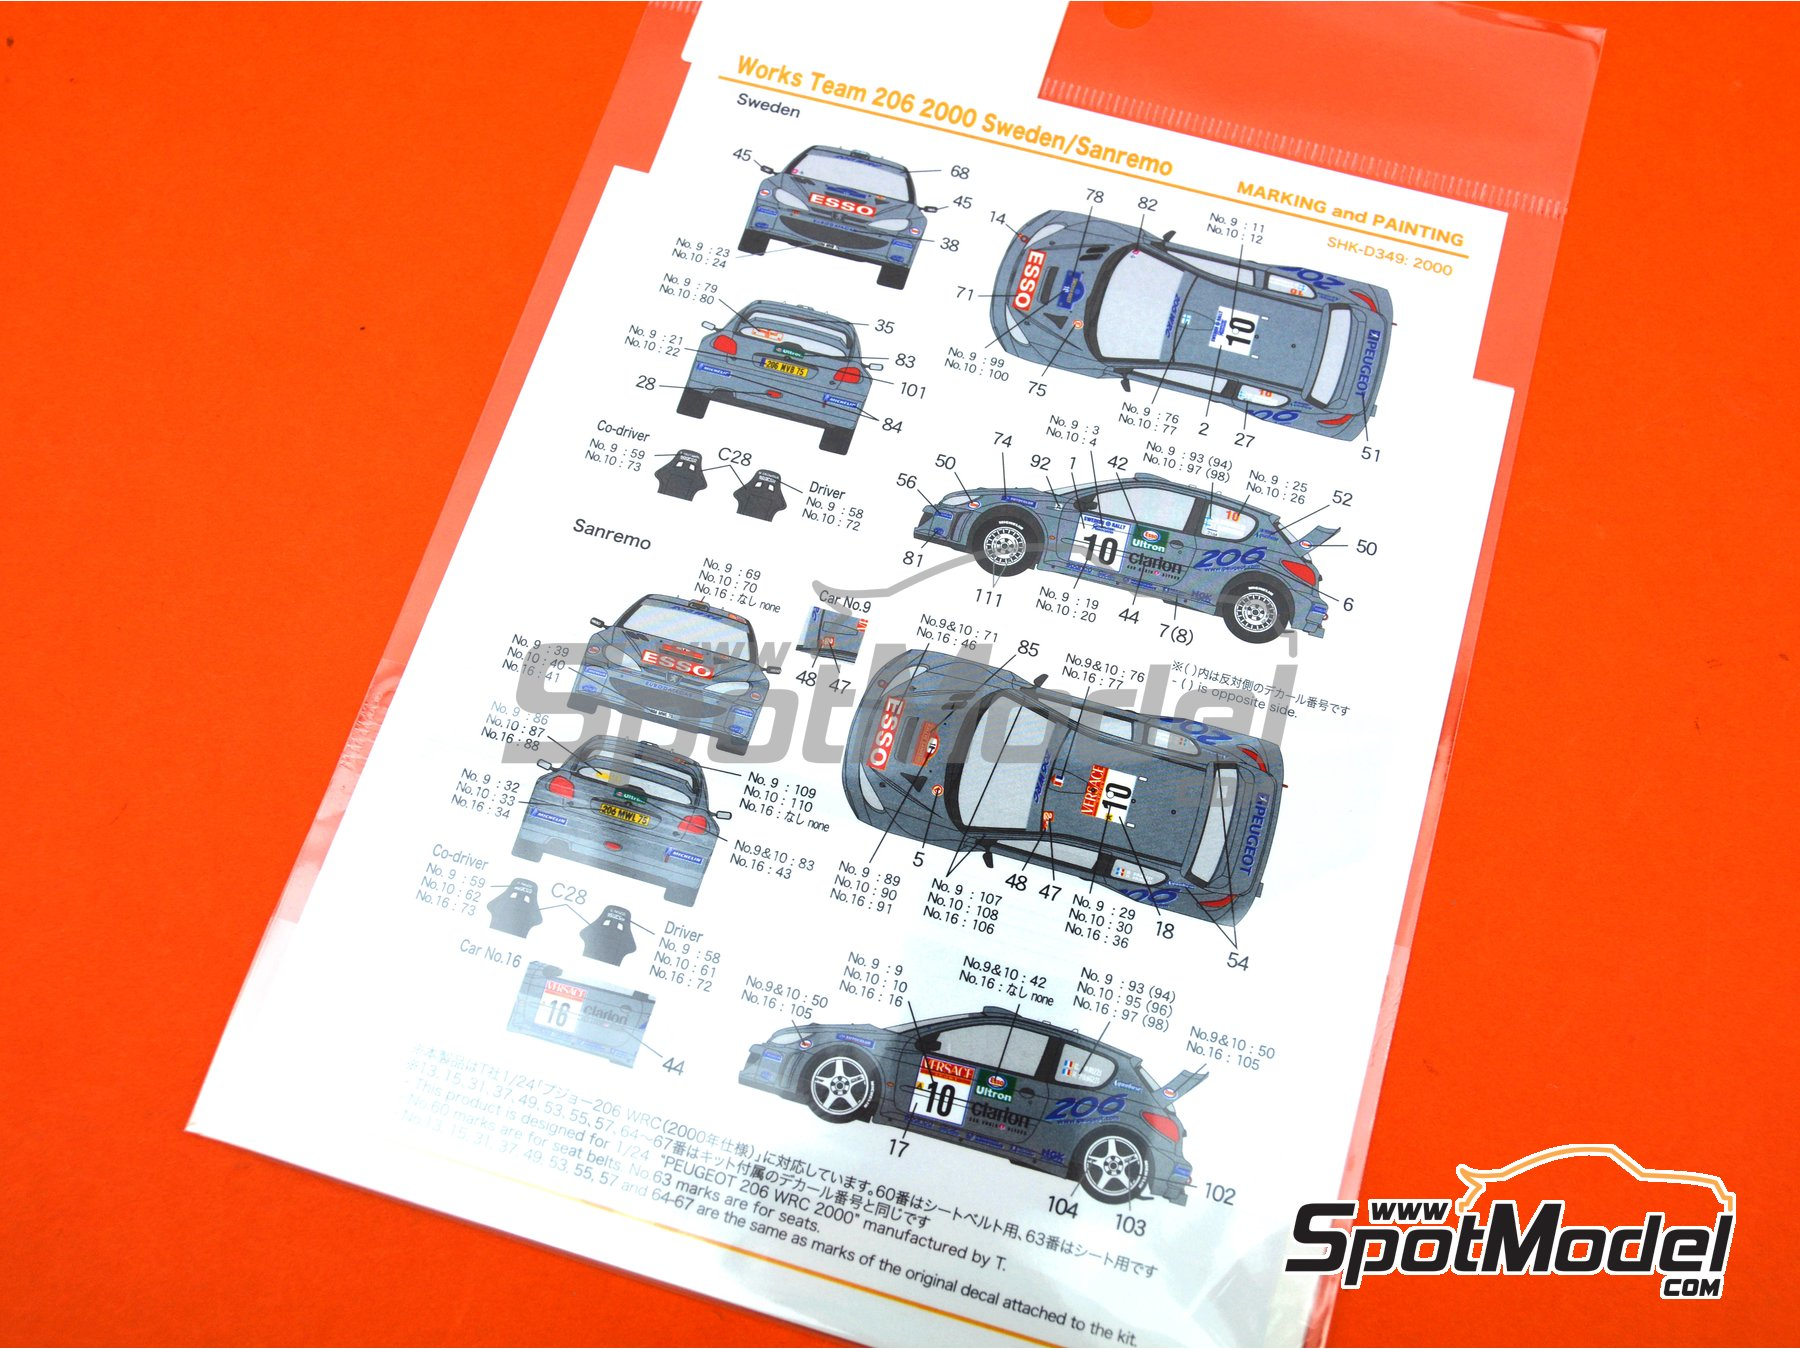 Image 7: Peugeot 206 WRC Works Team - Sanremo Rally, Svezia Sweden Rally 2000 | Marking / livery in 1/24 scale manufactured by Shunko Models (ref. SHK-D349)